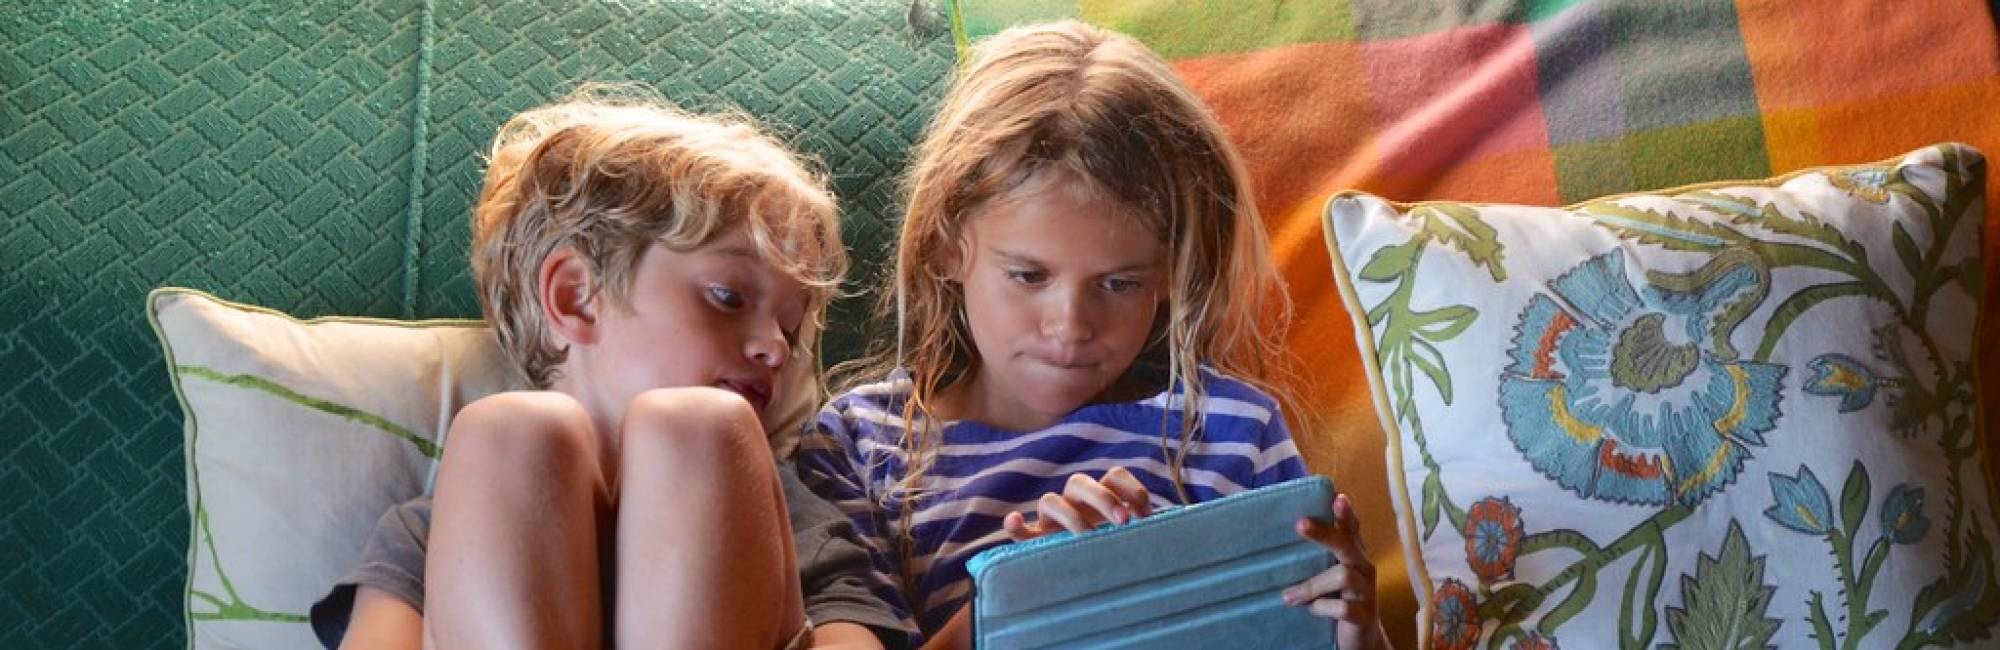 kids on a couch using ipad